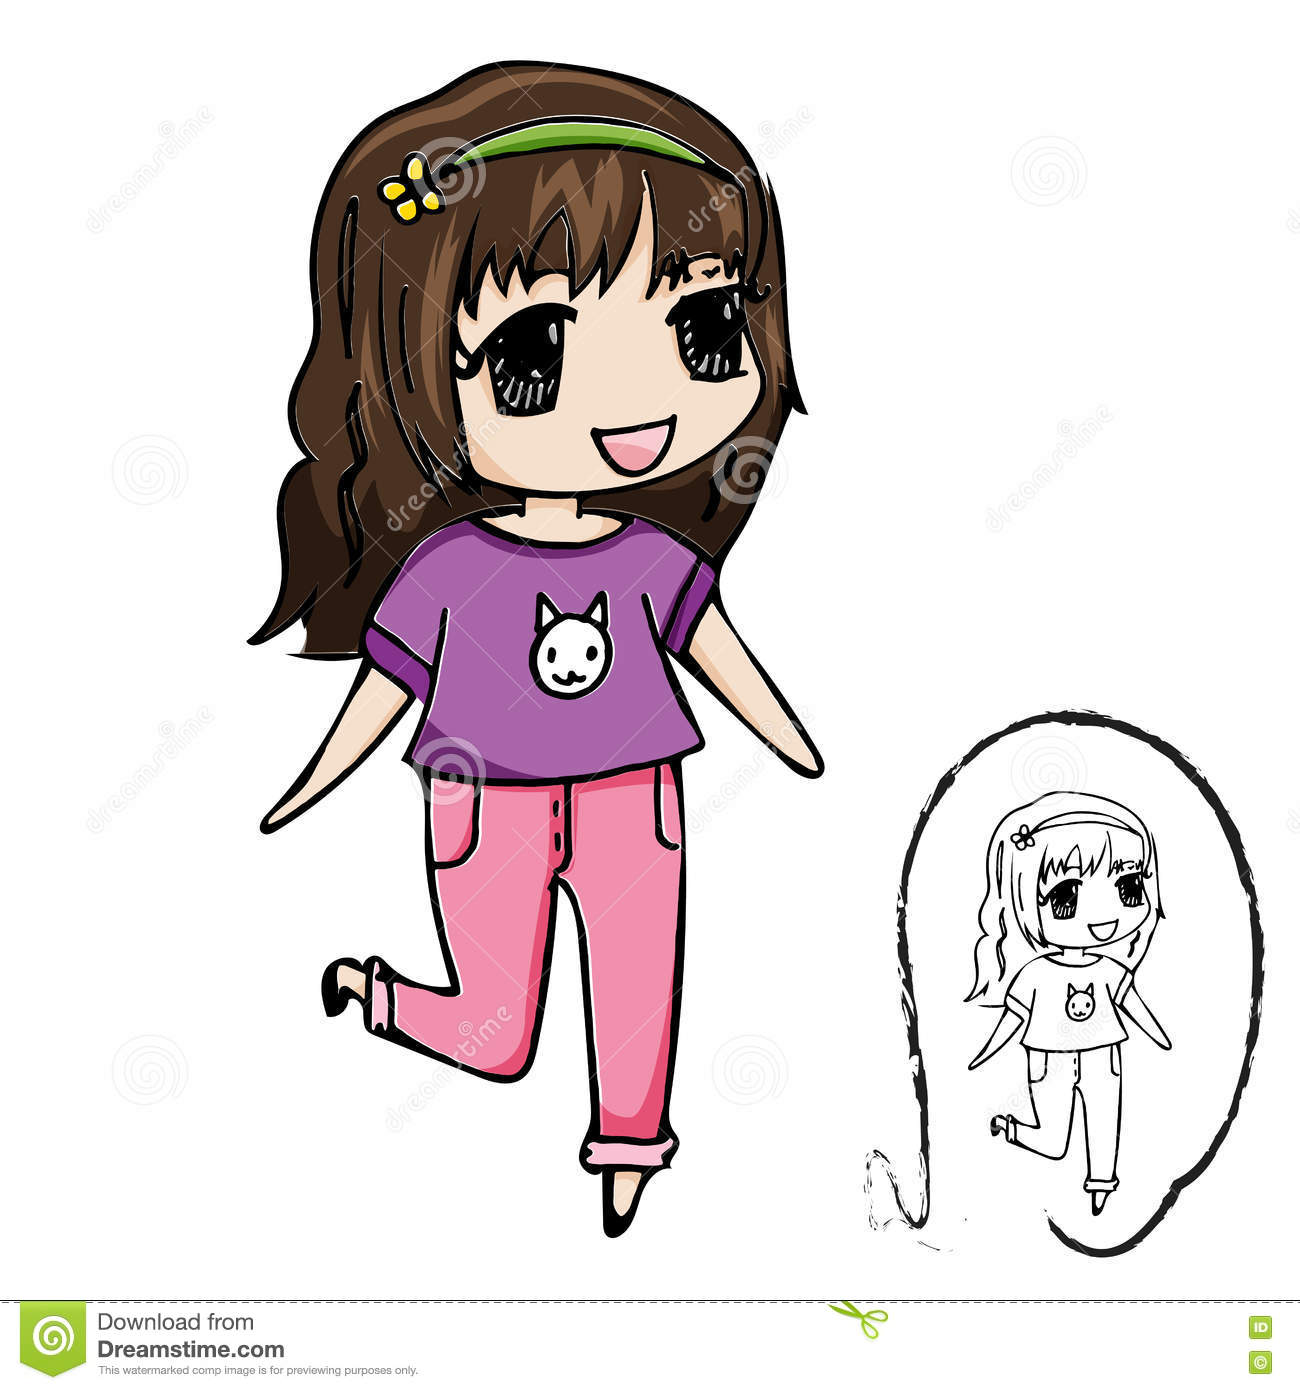 Cute Girl Cartoon Character With Black Line Drawing Illustration